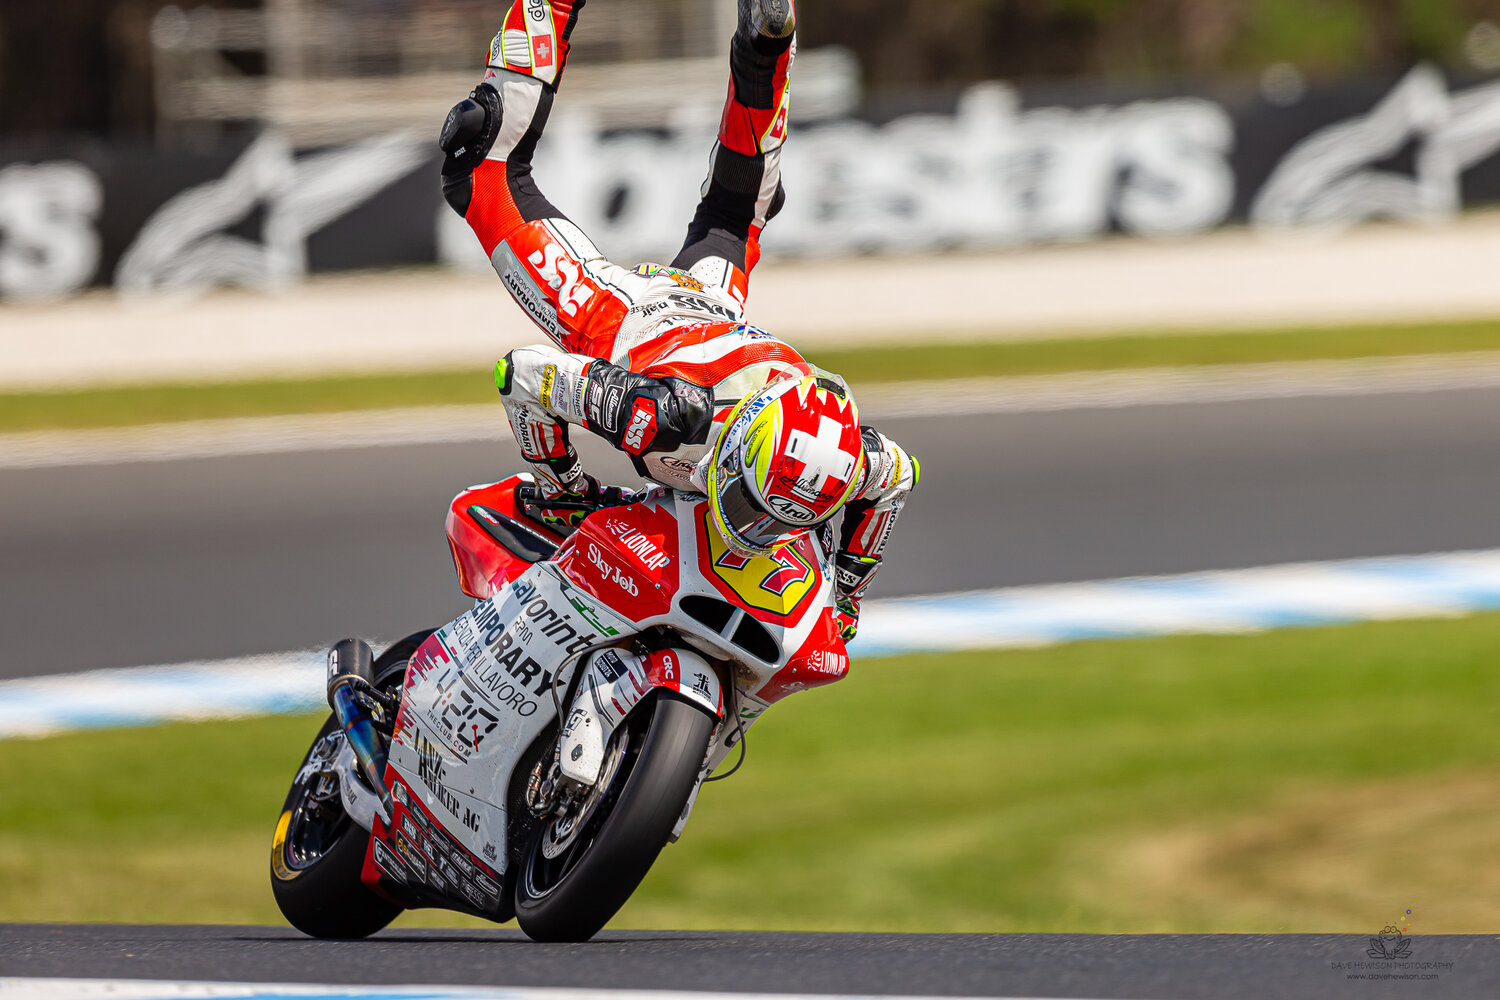 Phillip Island, Australia. 26 October, 2019. Dominique Aegerter (77) riding for Forward Racing Team (CHE) holds on during Free Practice 4 at the Promac Generac Australian MotoGP. Credit: Dave Hewison/Alamy Live News